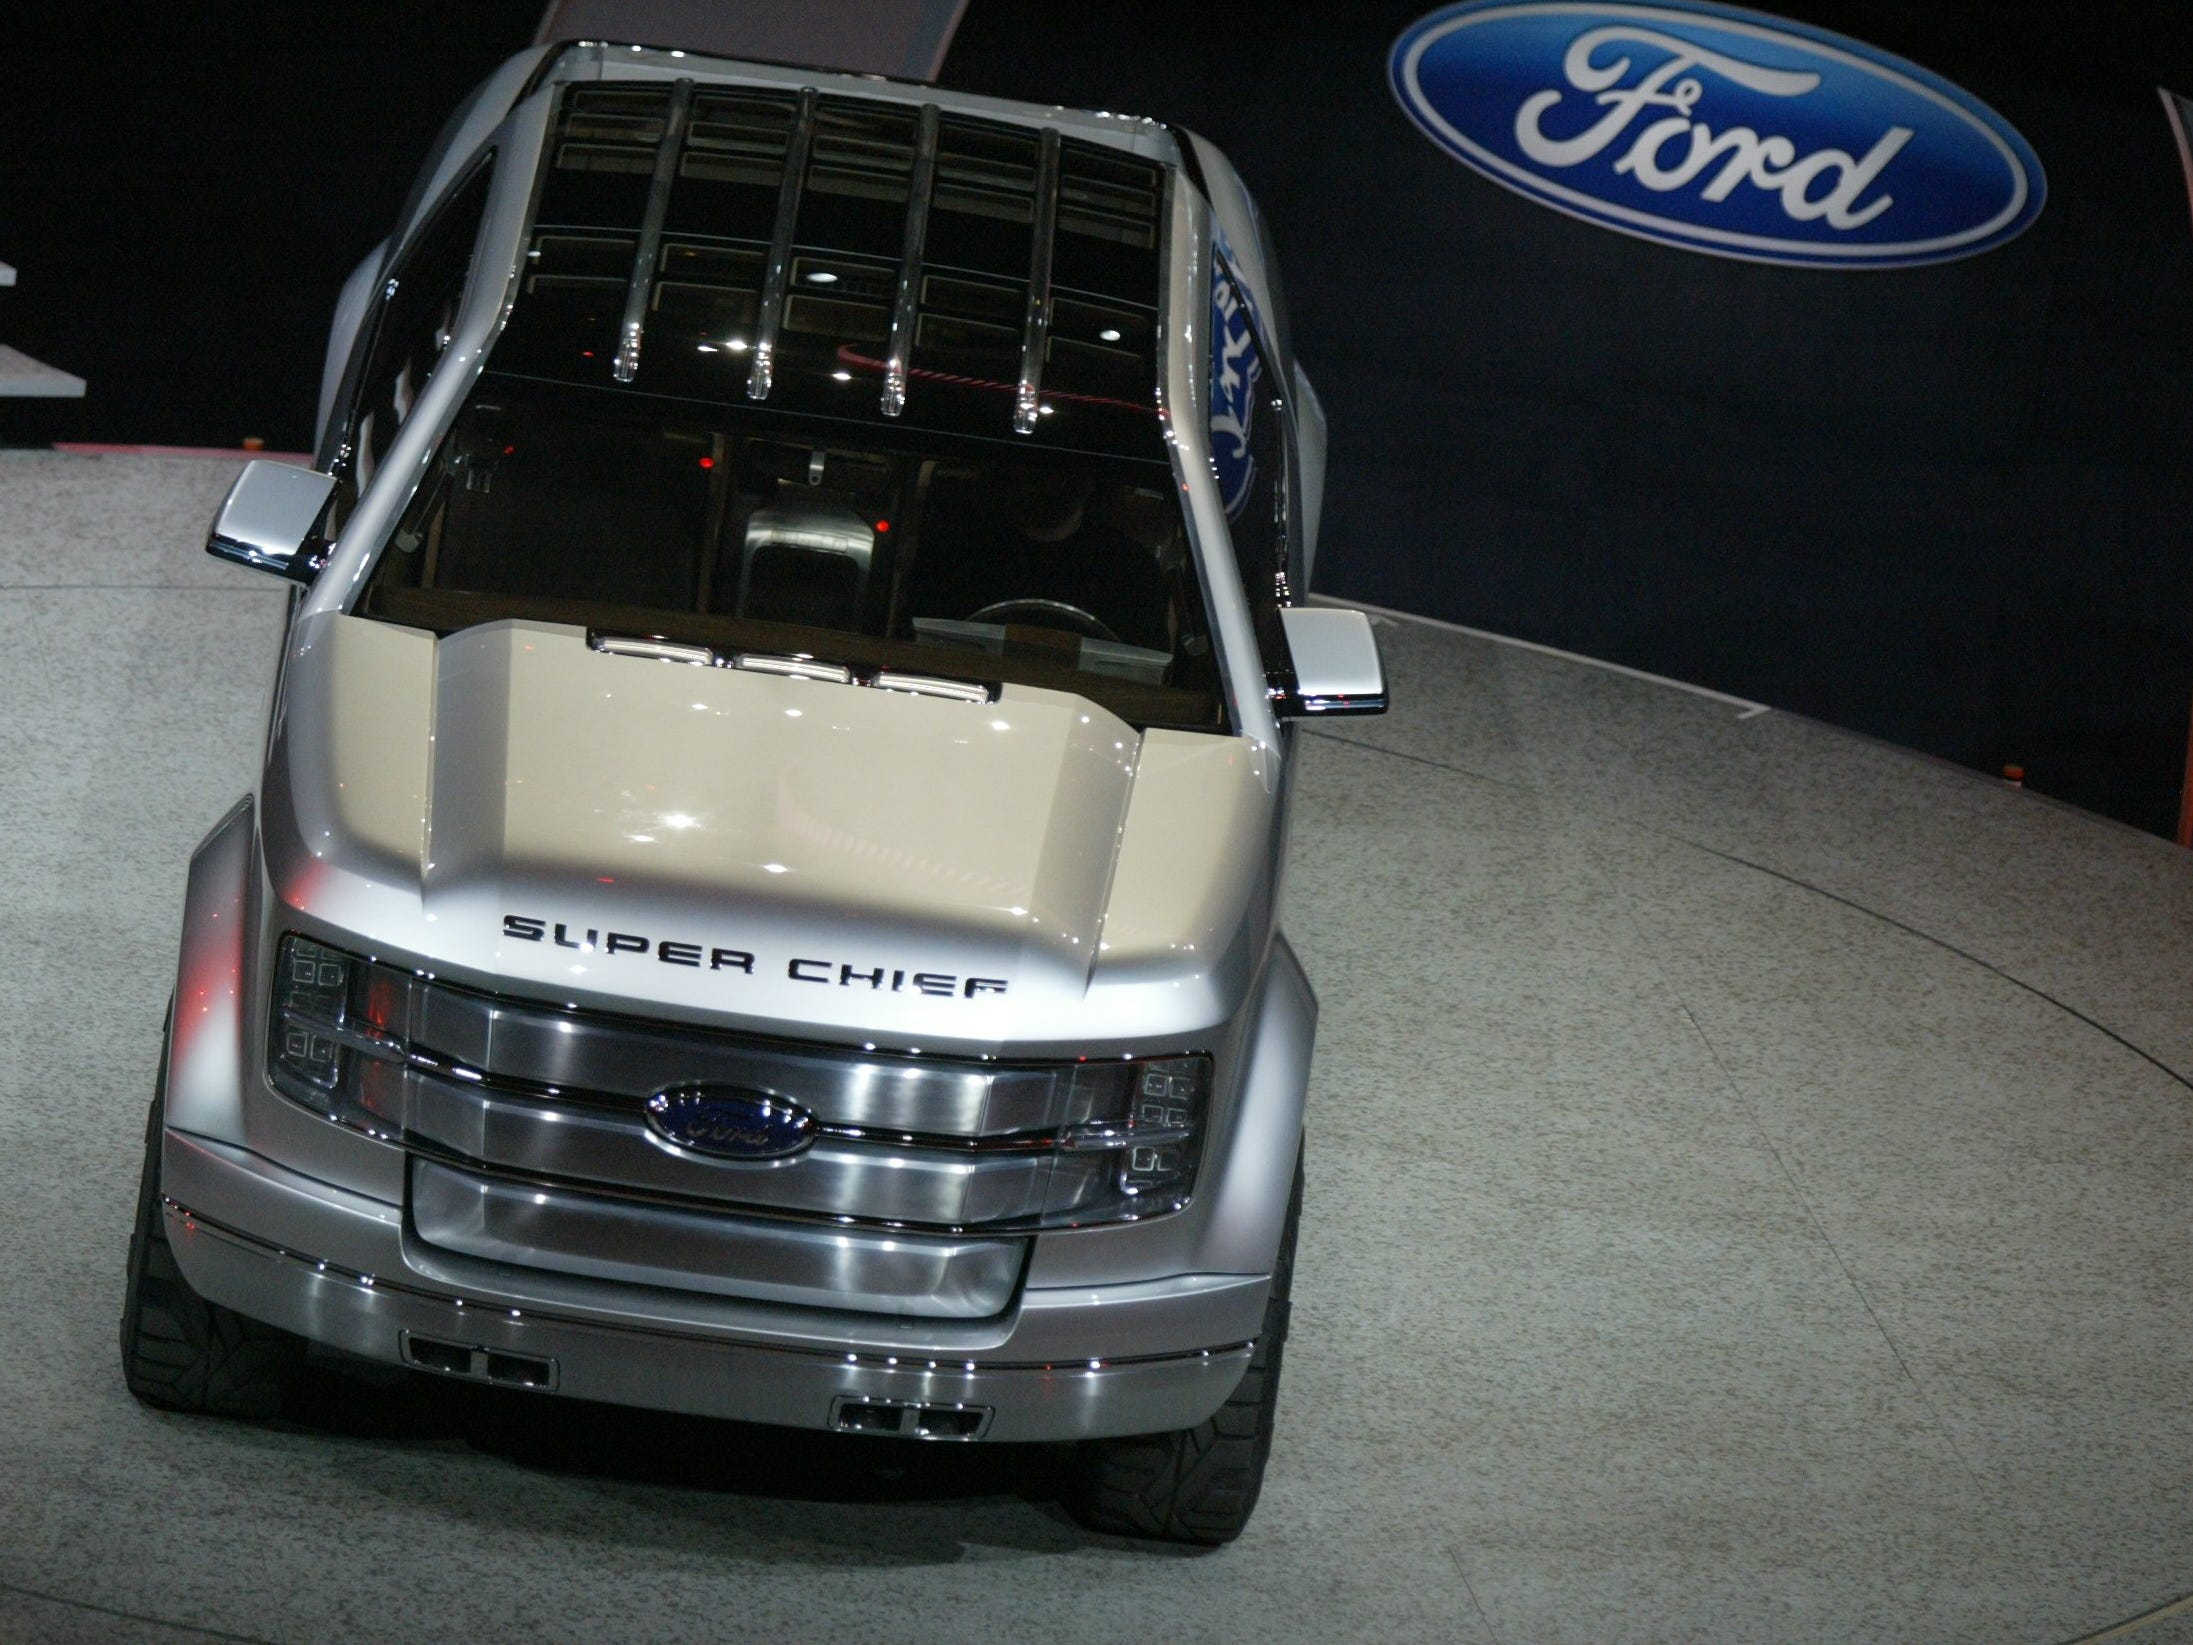 Ford introduces the  Ford F-250 Super Chief Concept at the North American International Auto Show , Sunday, January 8, 2006 at Cobo Hall in Detroit.